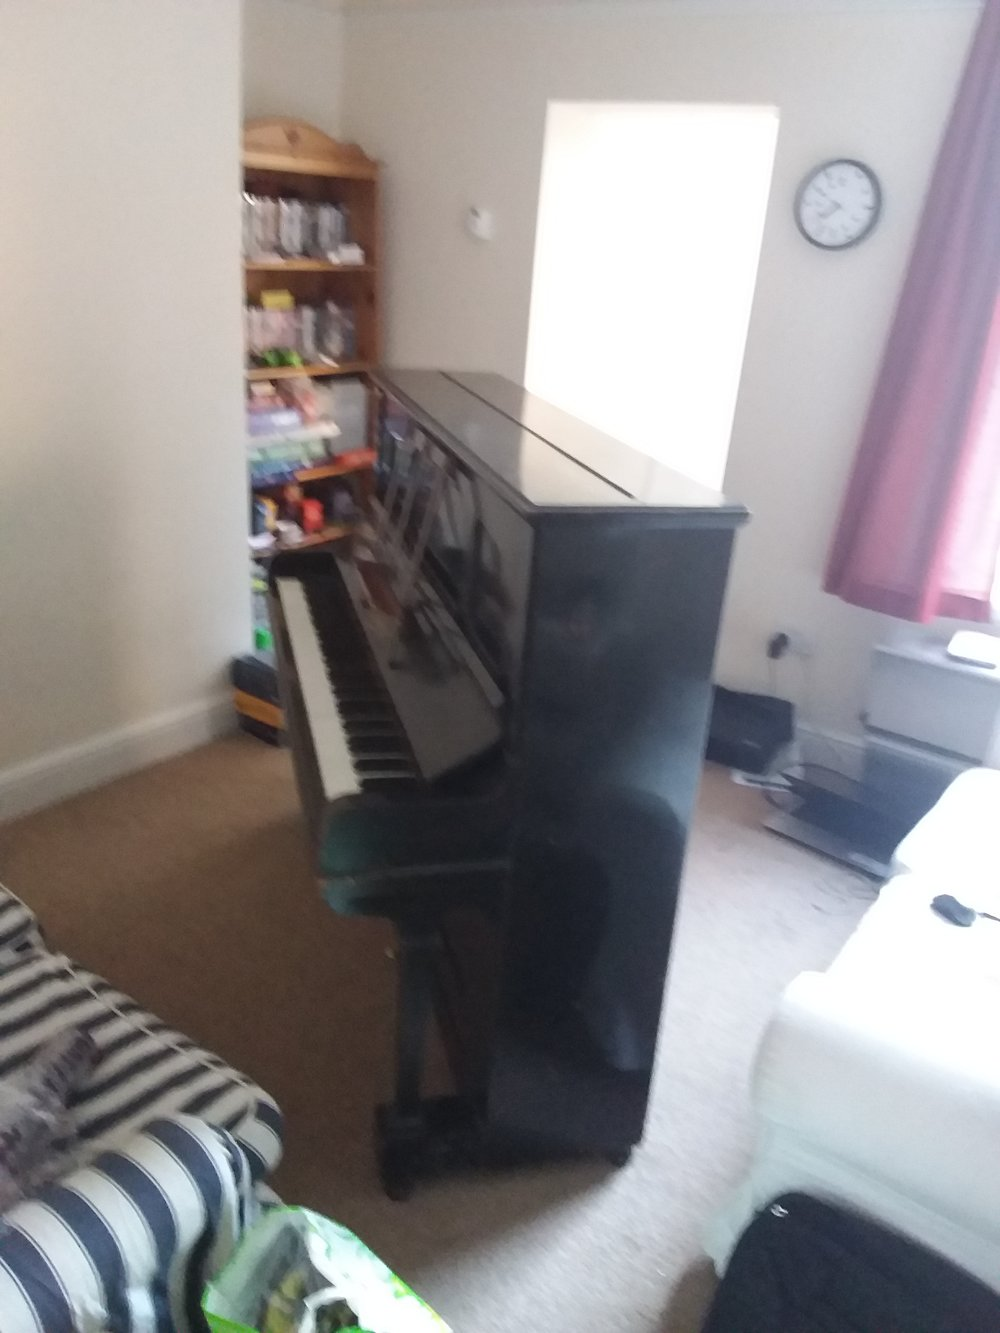 I spent about two days with the displaced piano rather dominating my sitting room.